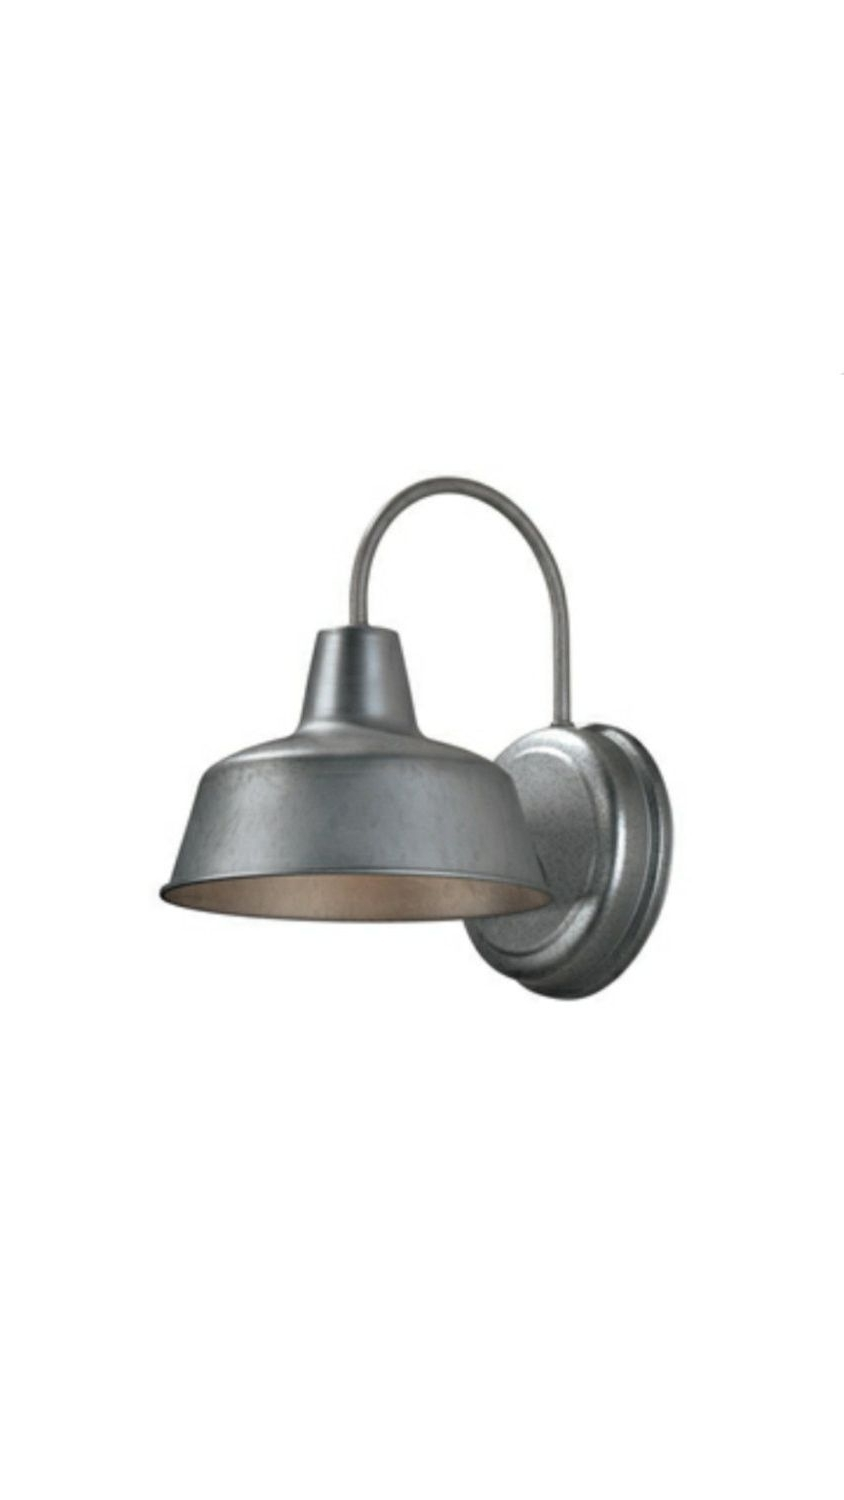 Galvanized Outdoor Ceiling Lights Within Popular Farmhouse Sconce Light (View 11 of 20)